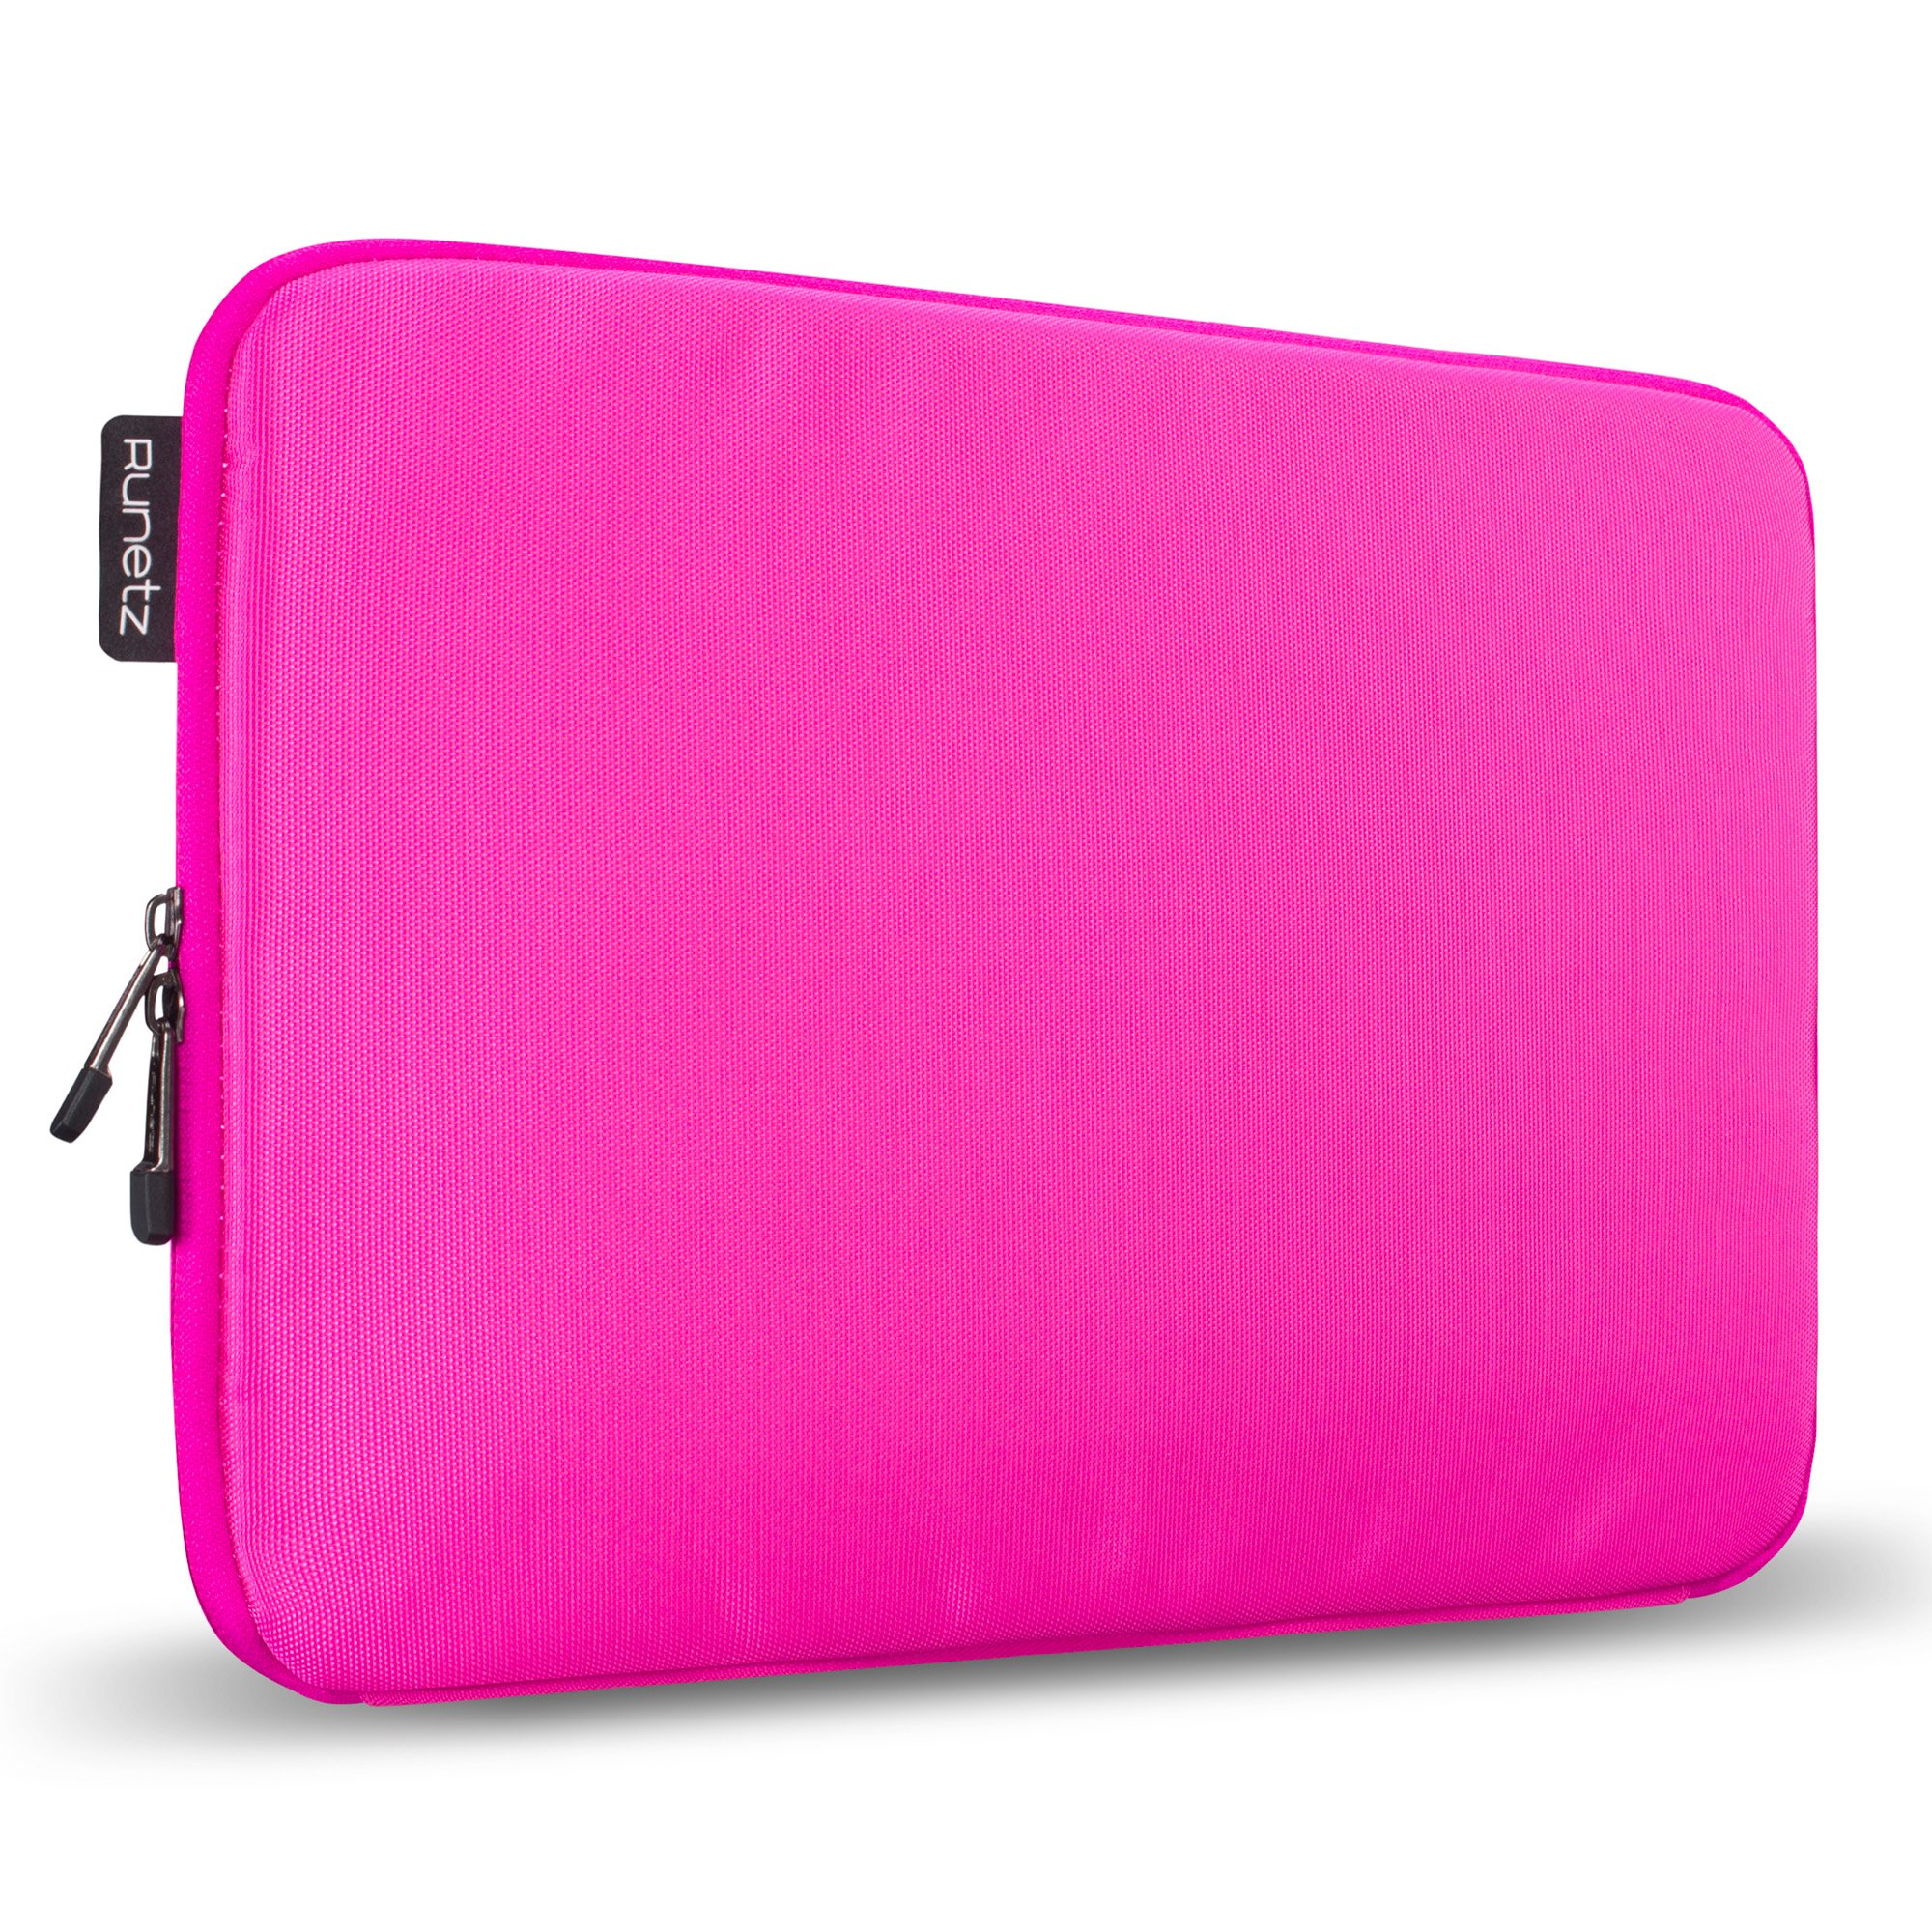 Runetz Macbook Pro 15 Inch Sleeve Soft Laptop Sleeve 15 Inch Notebook Computer Bag Protective Case Cover With Zipper Pink Gia Tốt Nhất 2020 Fpt Shop